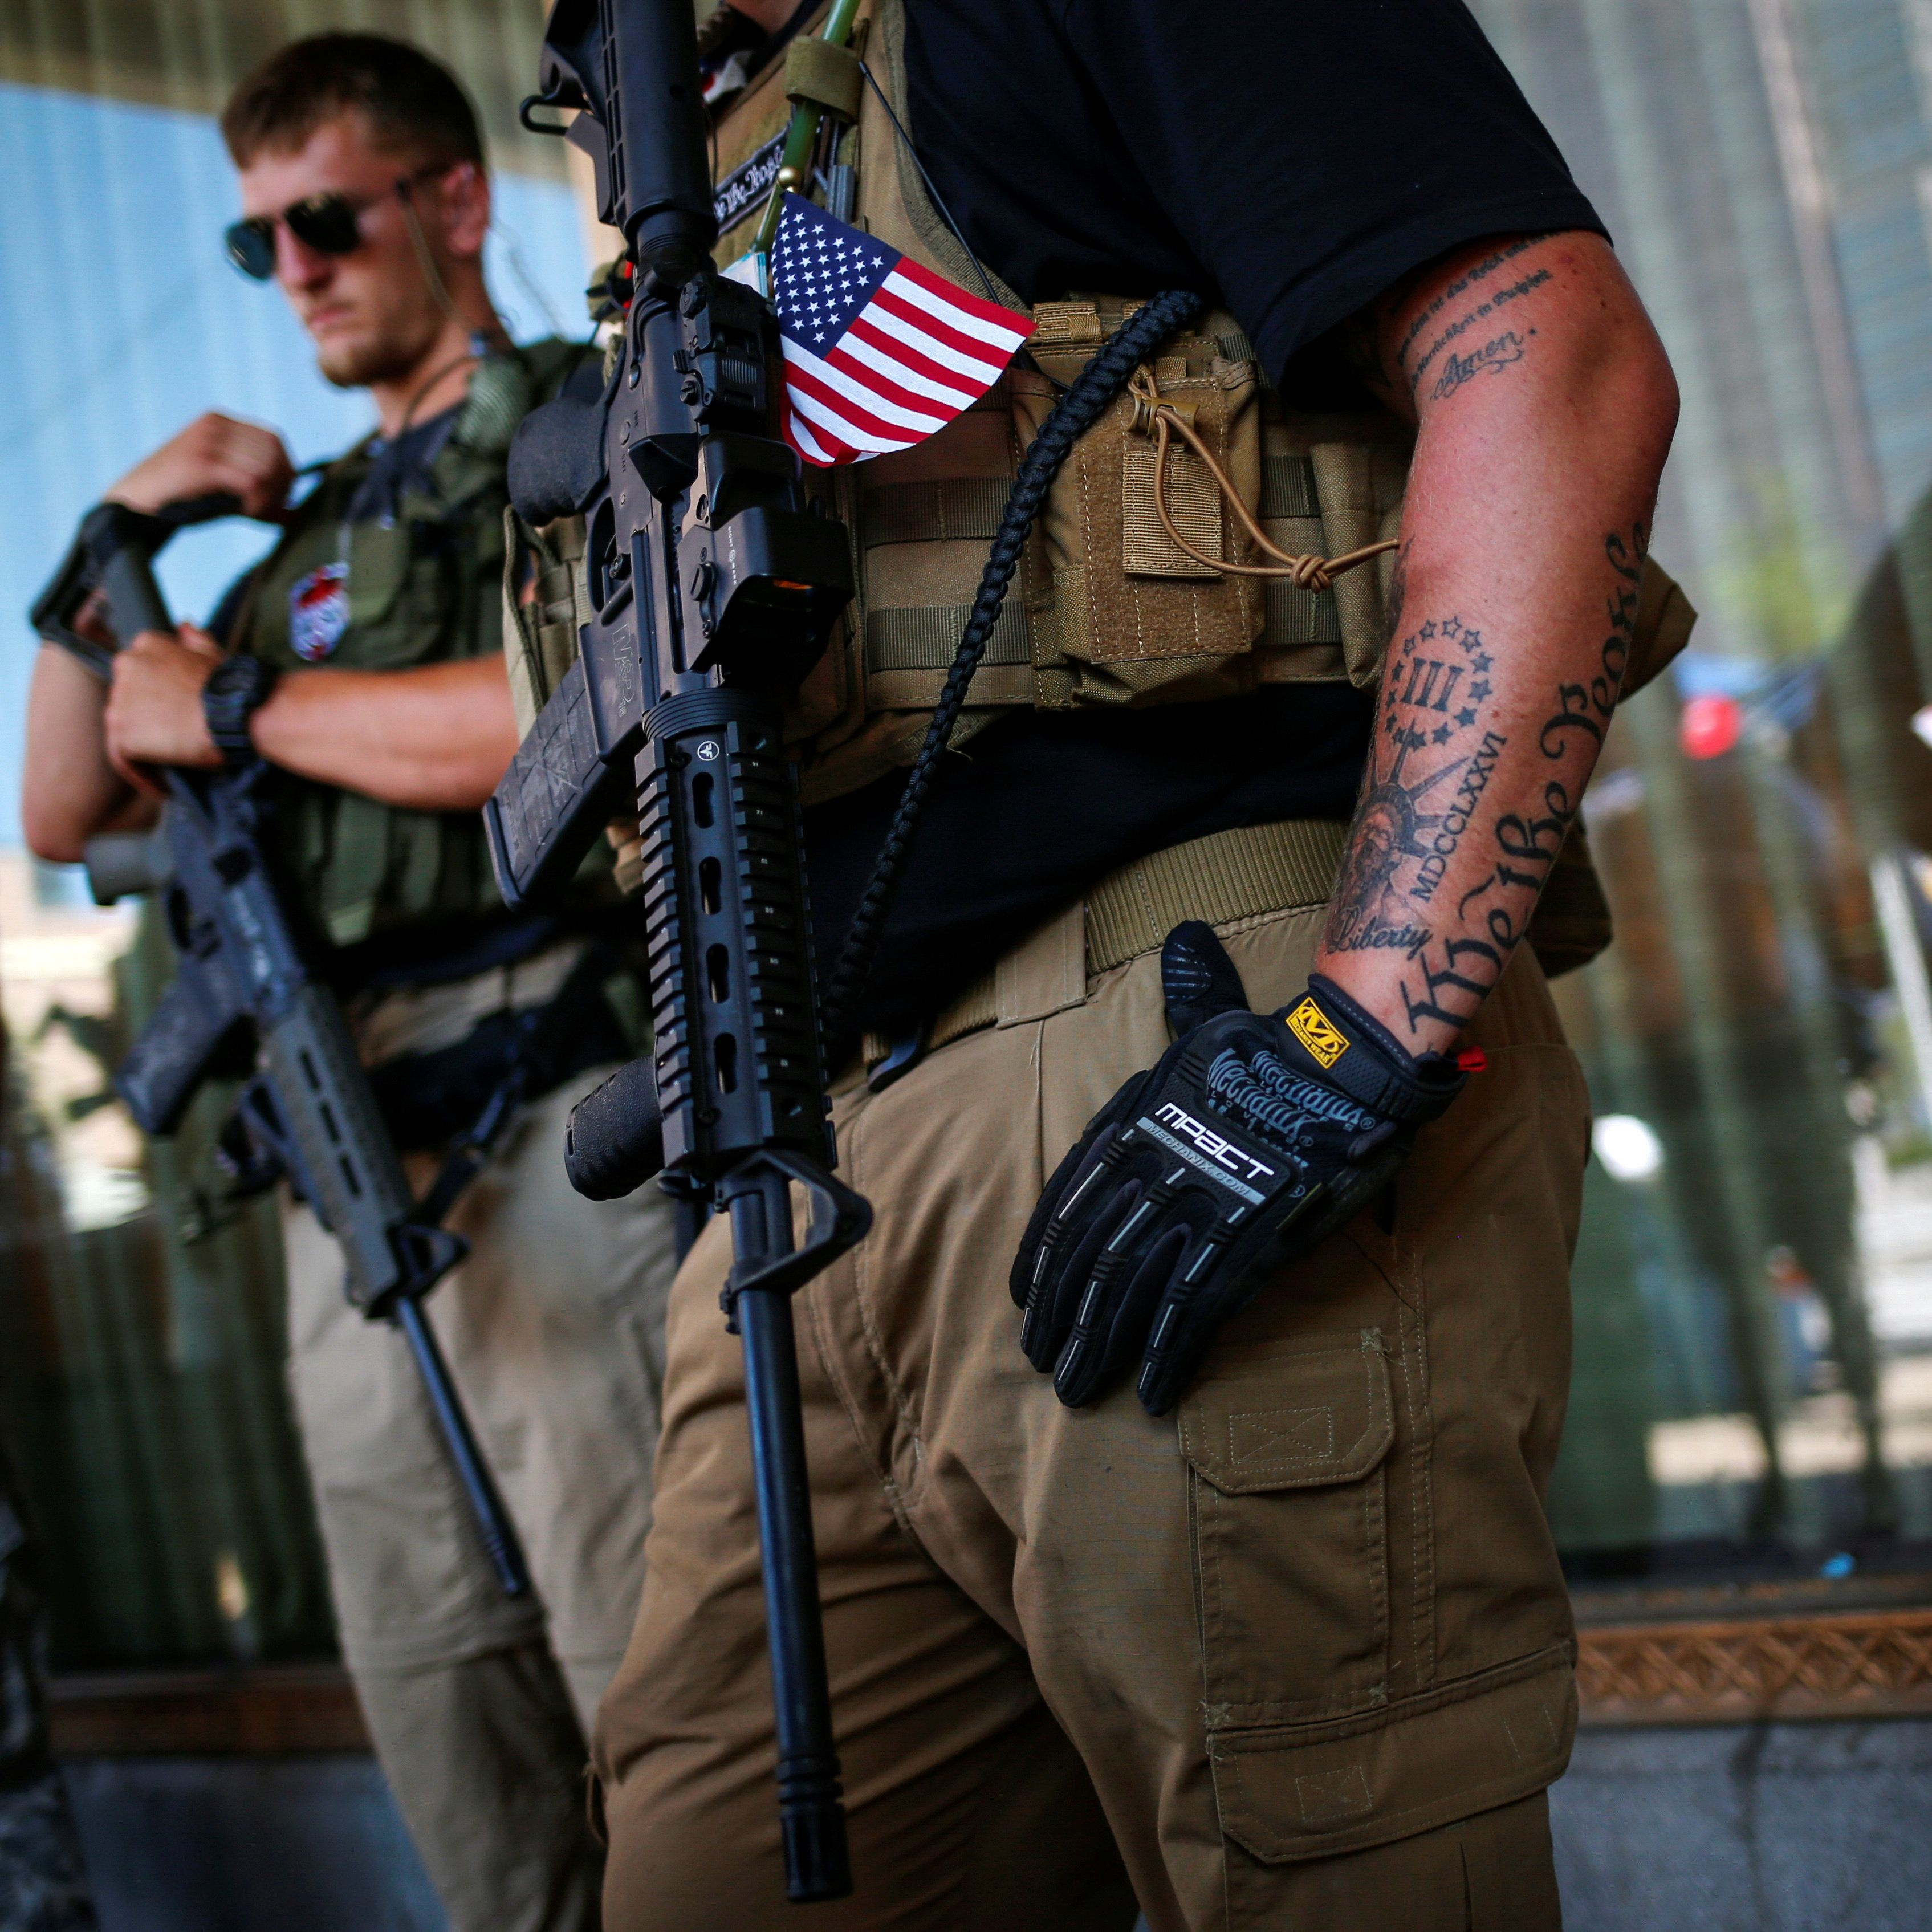 Members of the West Ohio Minutemen carry their assault weapons while taking a break from patrolling downtown Cleveland during the Republican National Convention in Ohio, U.S., July 19, 2016. REUTERS/Adrees Latif